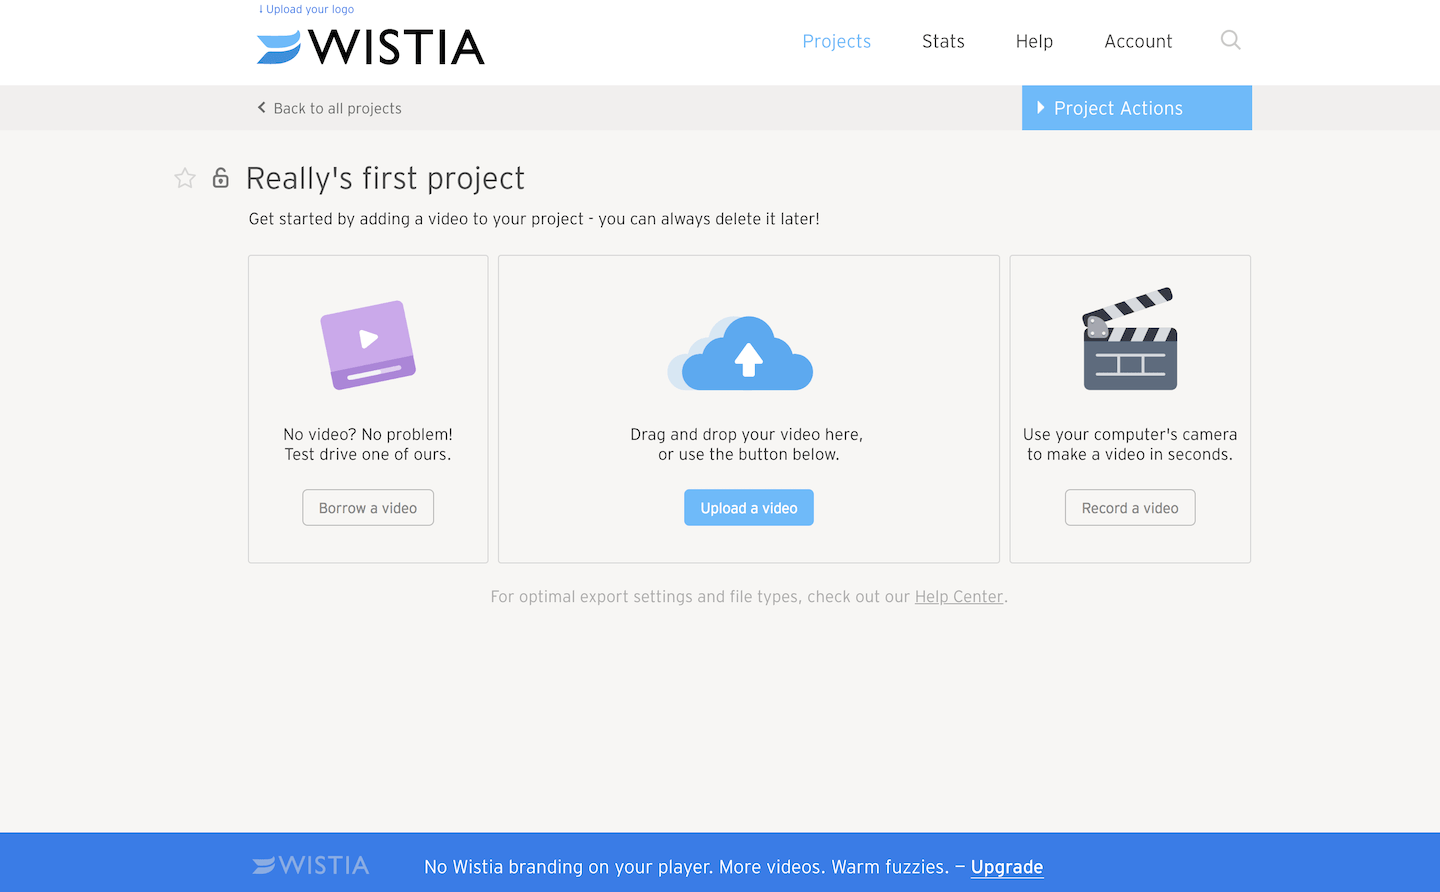 Wistia new video project upload example of a test file in user onboarding to make it easier to get started. An example of good UX for onboarding